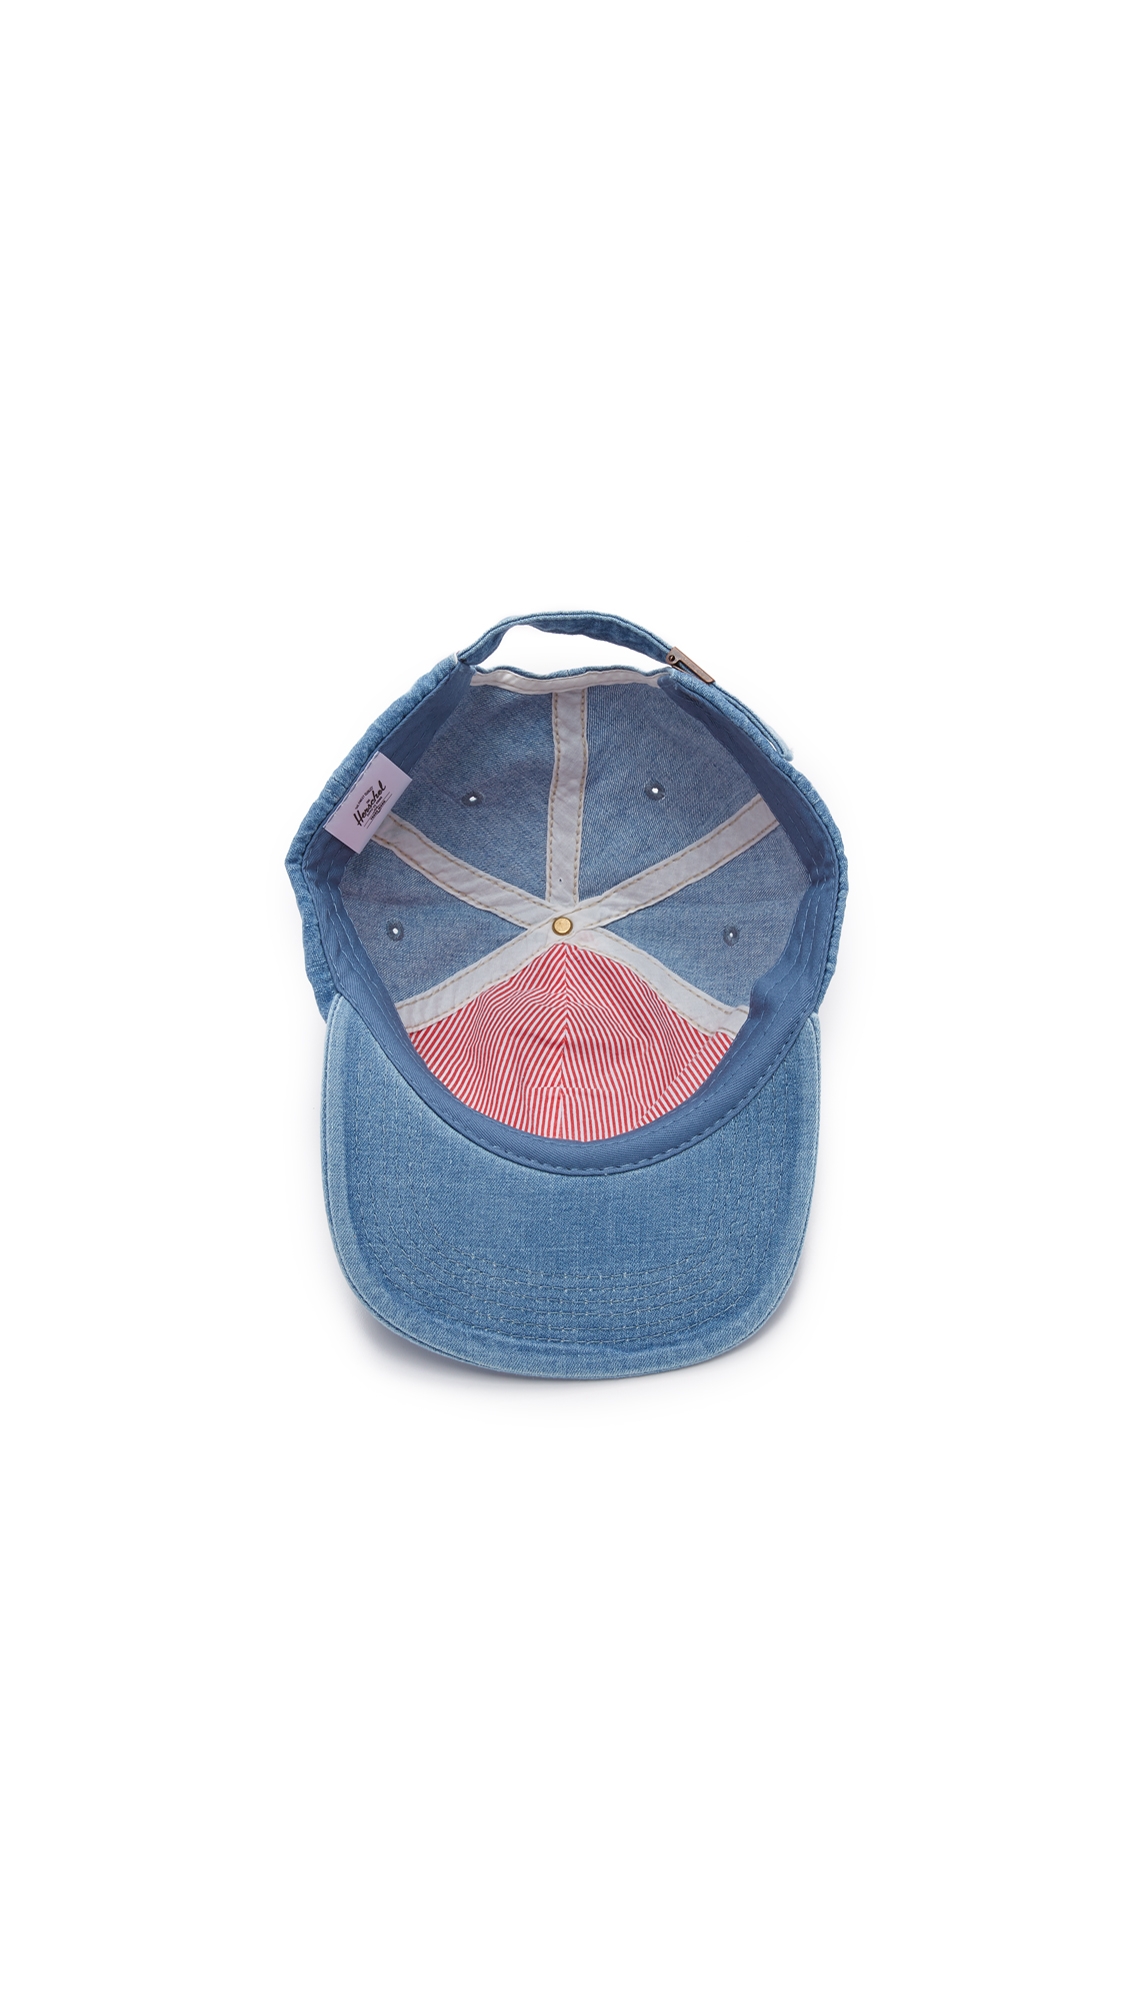 new product 9e8b5 e2e51 Herschel Supply Co. Faded Denim Albert Cap   EAST DANE